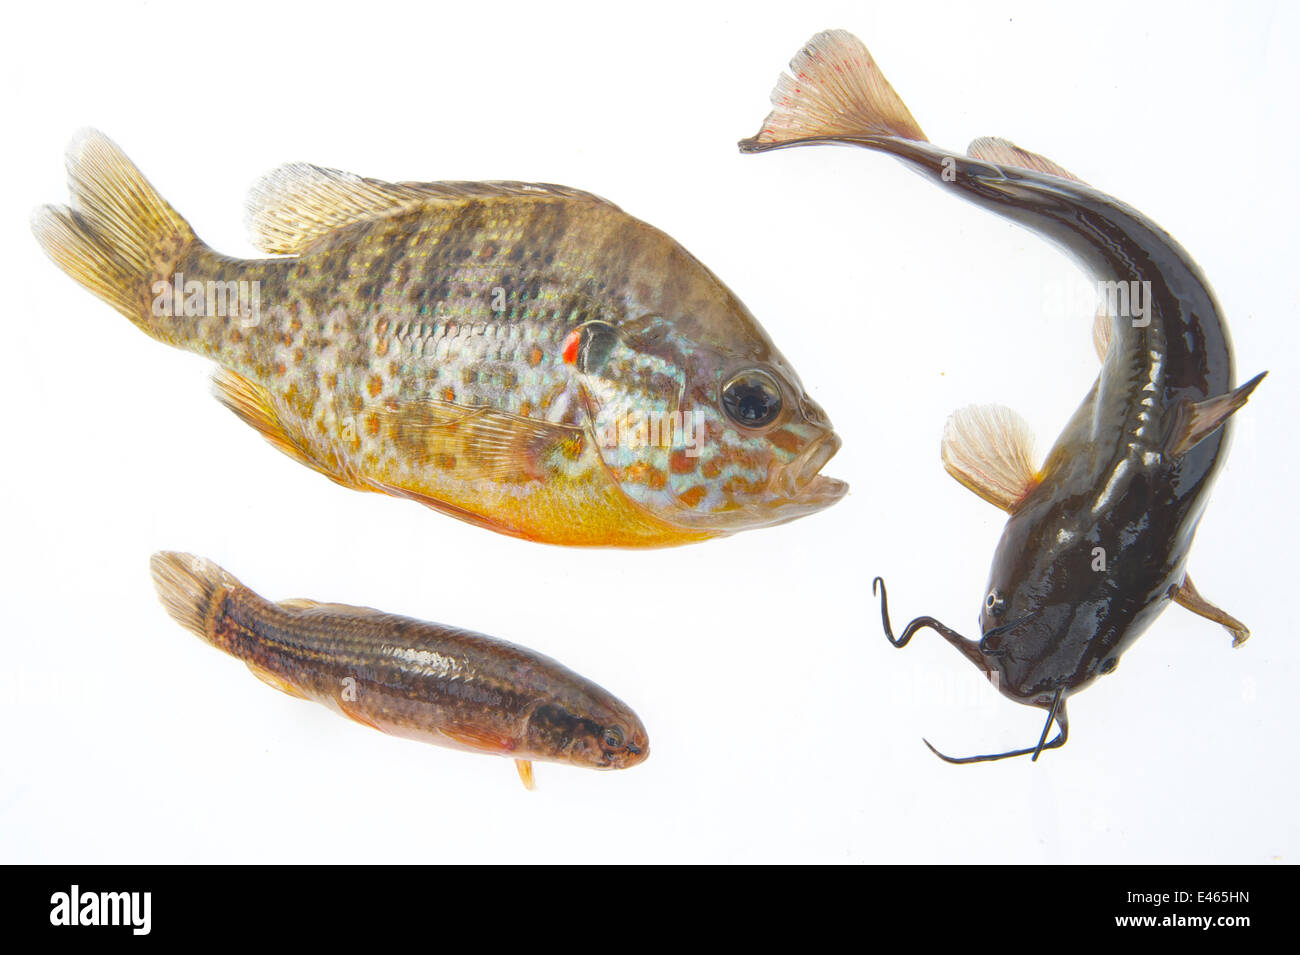 Composite image of American fish species introduced to Europe: Pumpkinseed sunfish (Lepomis gibbosus, left), Brown - Stock Image